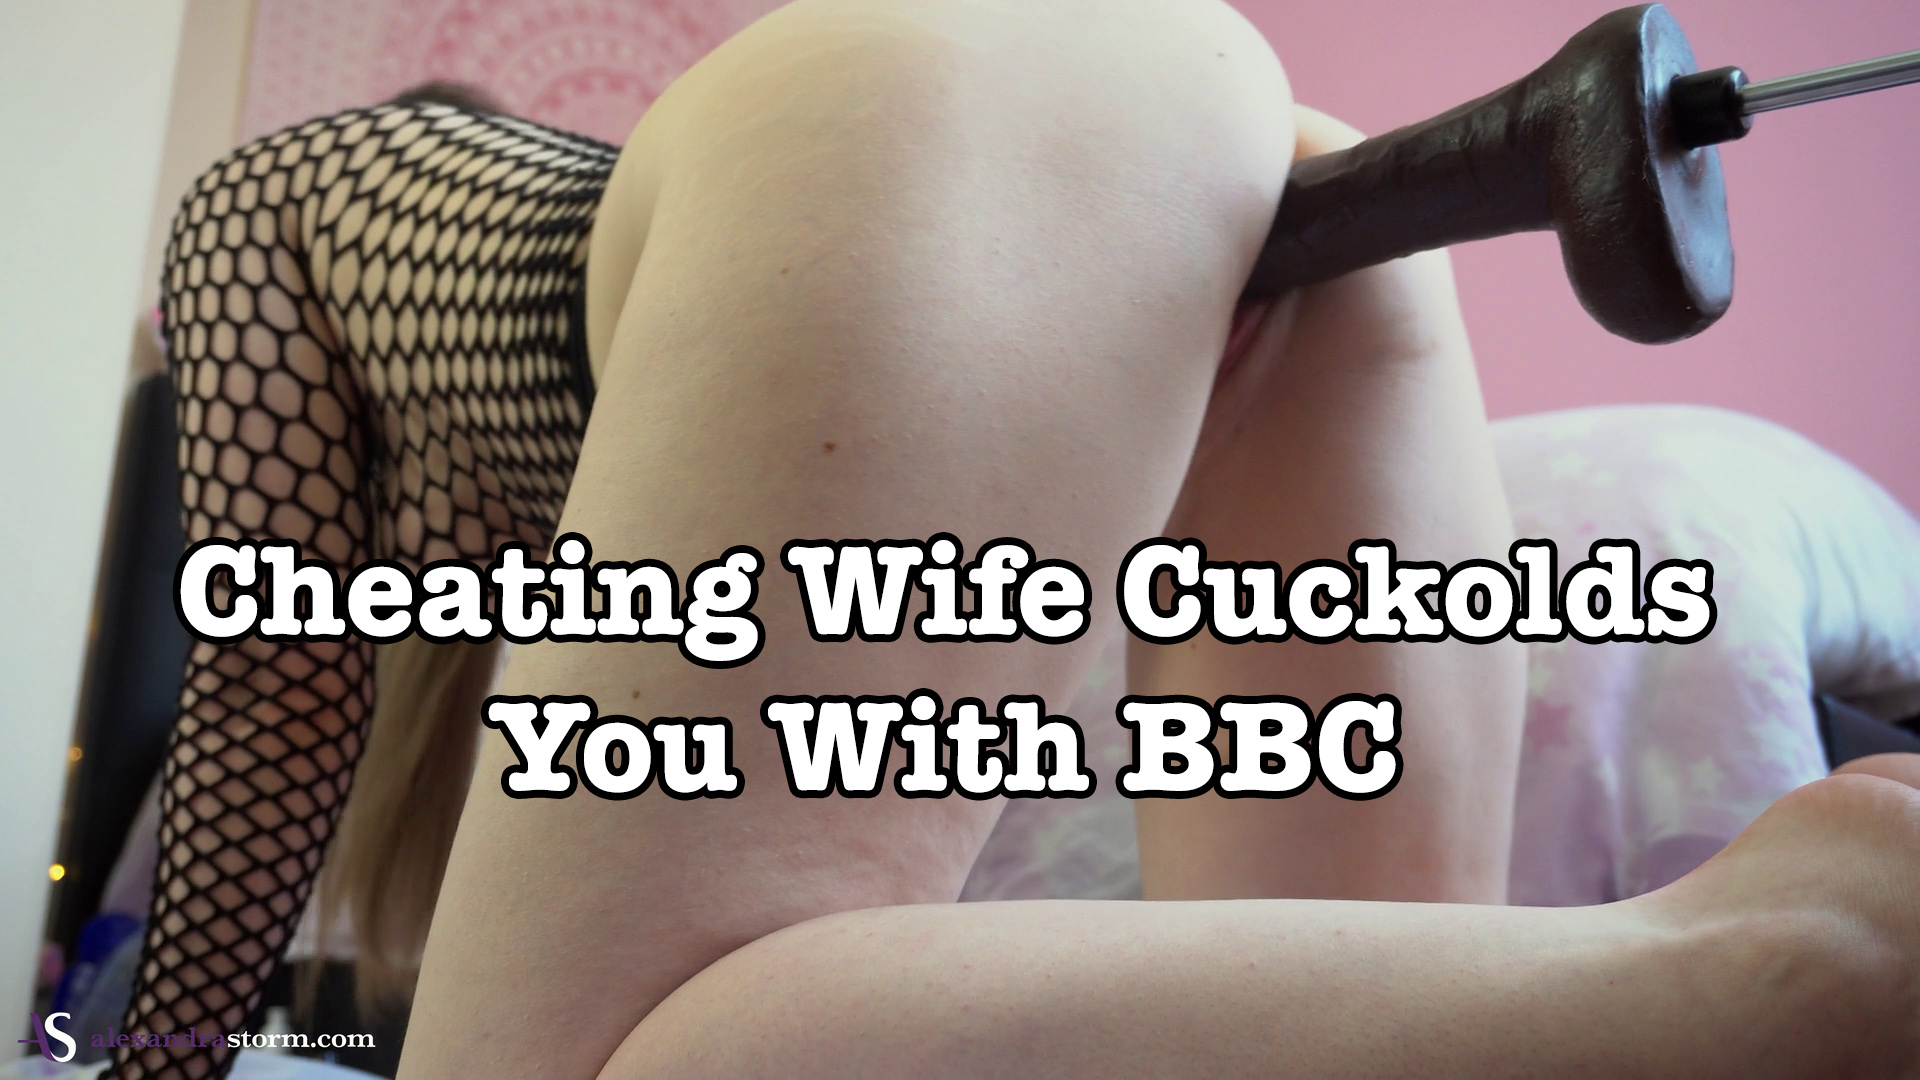 Cheating Wife Cuckolds You With BBC